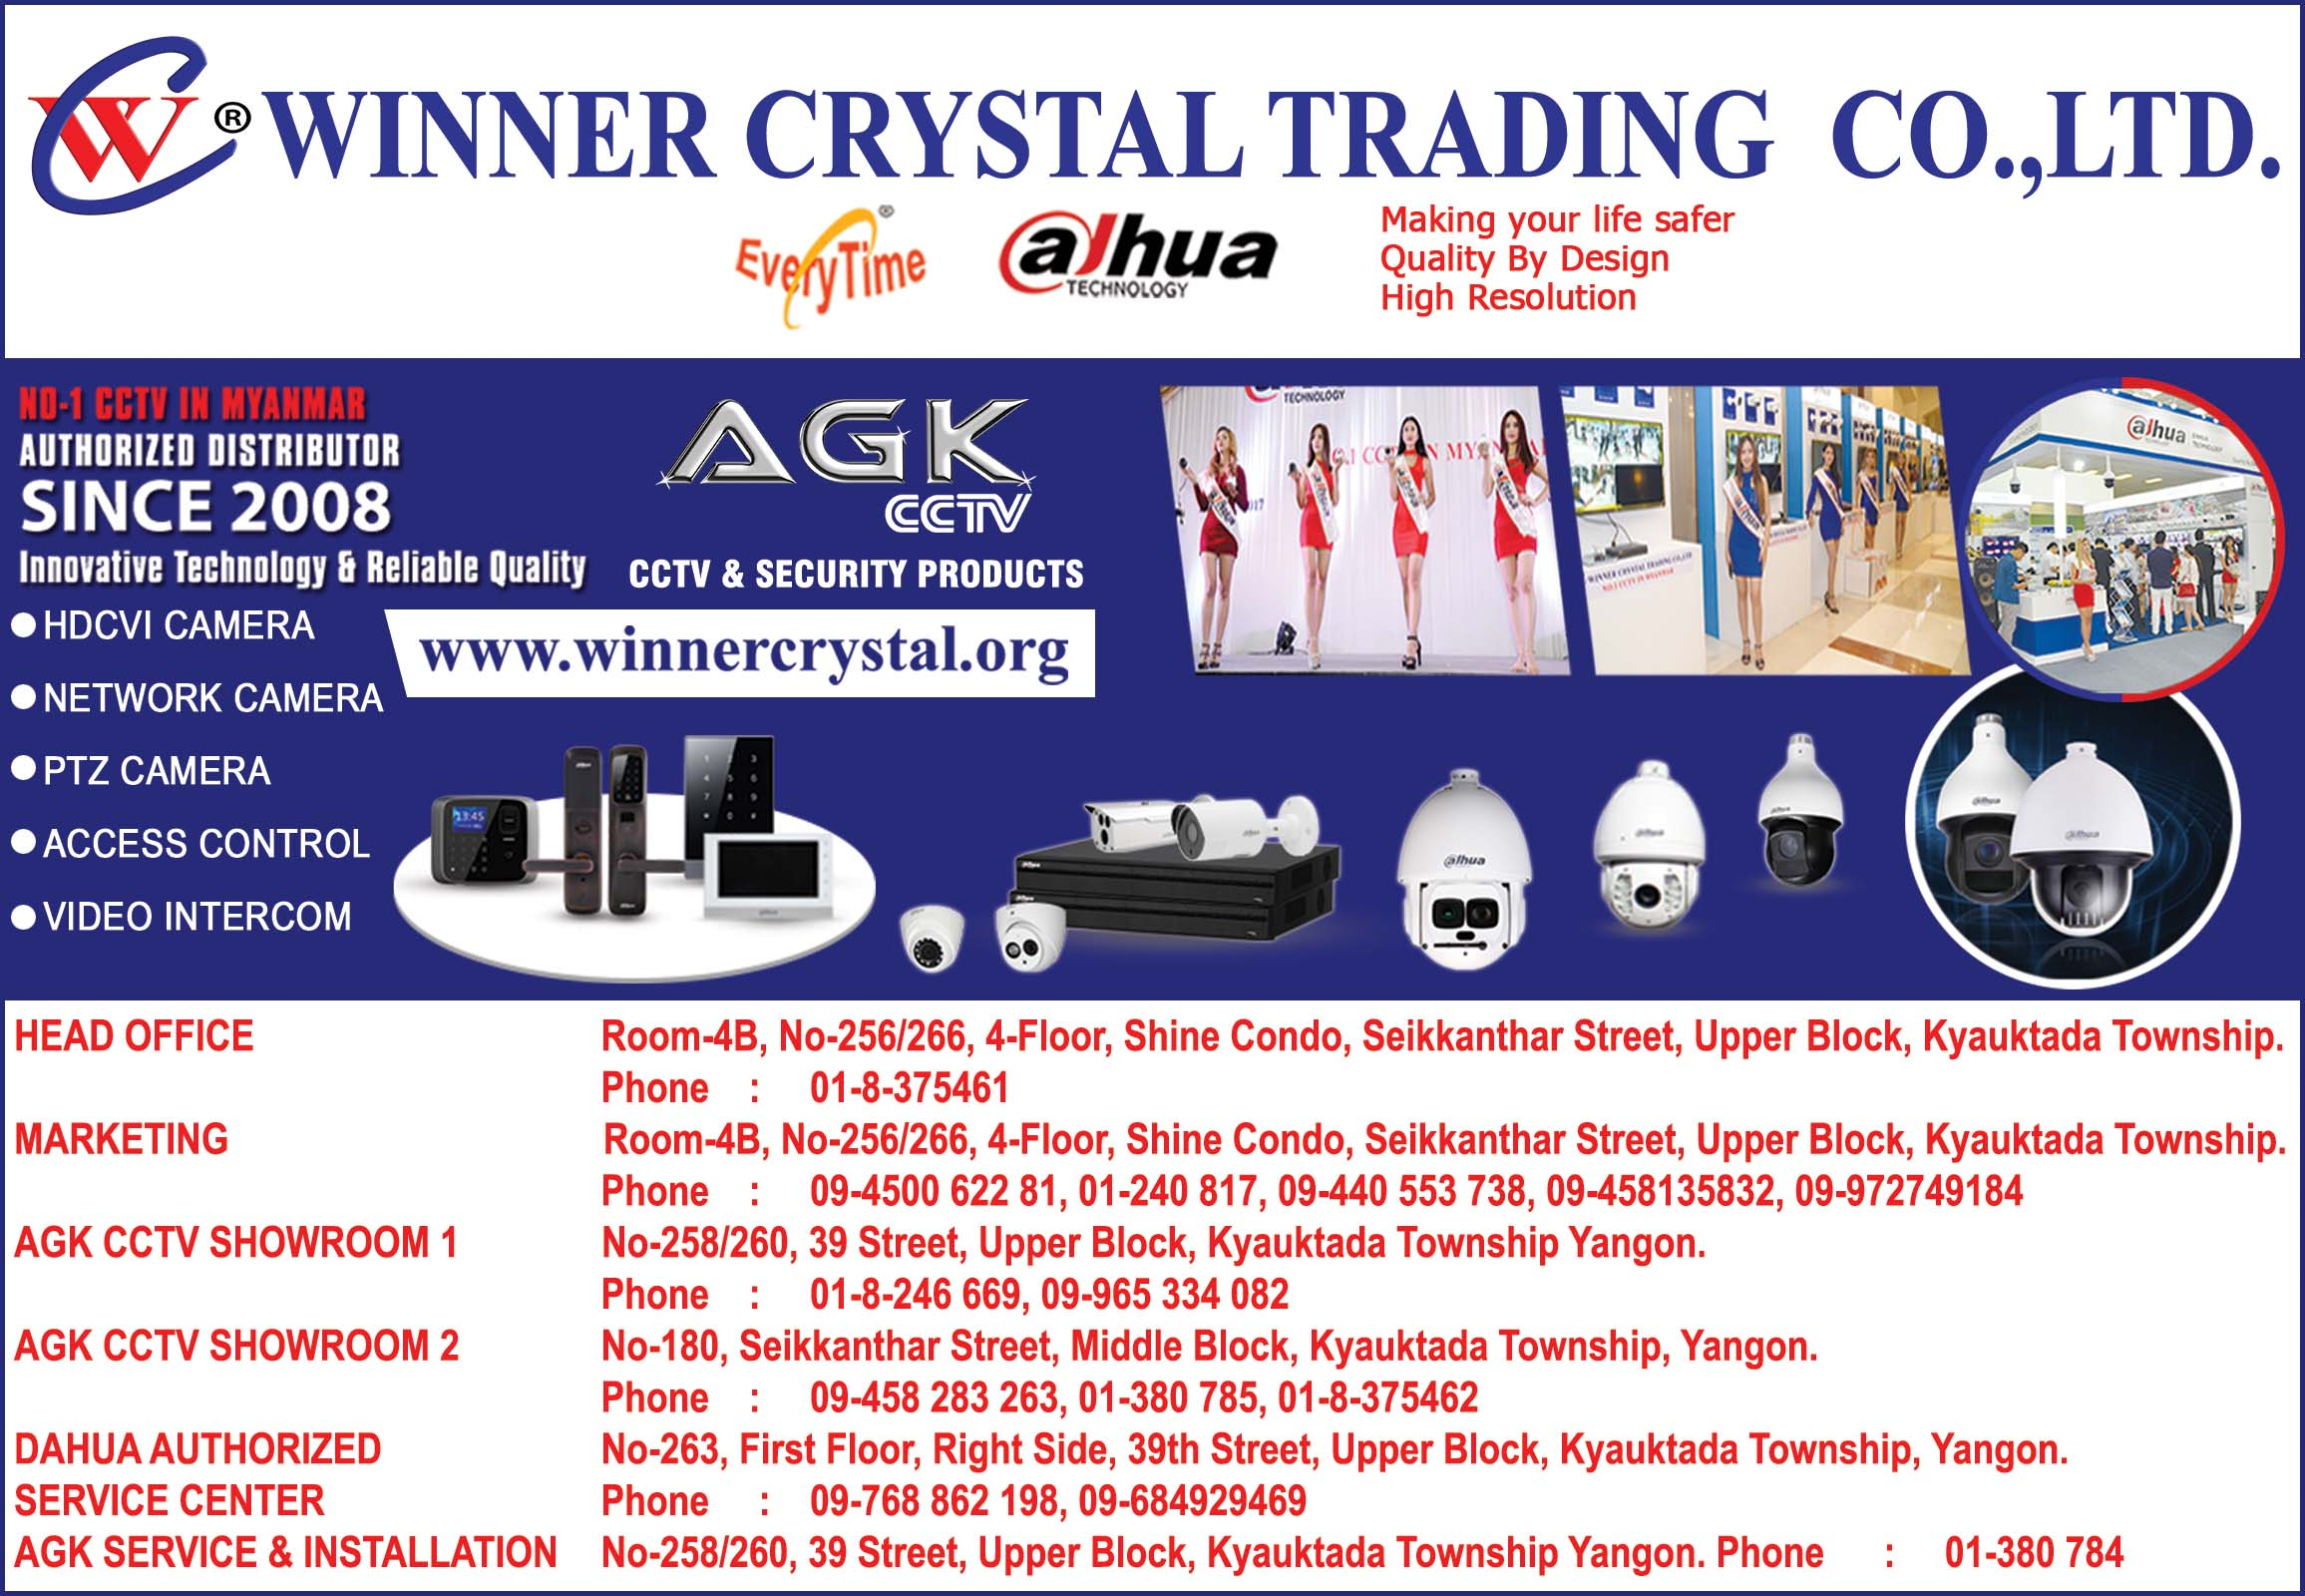 Winner Crystal Trading Co., Ltd.